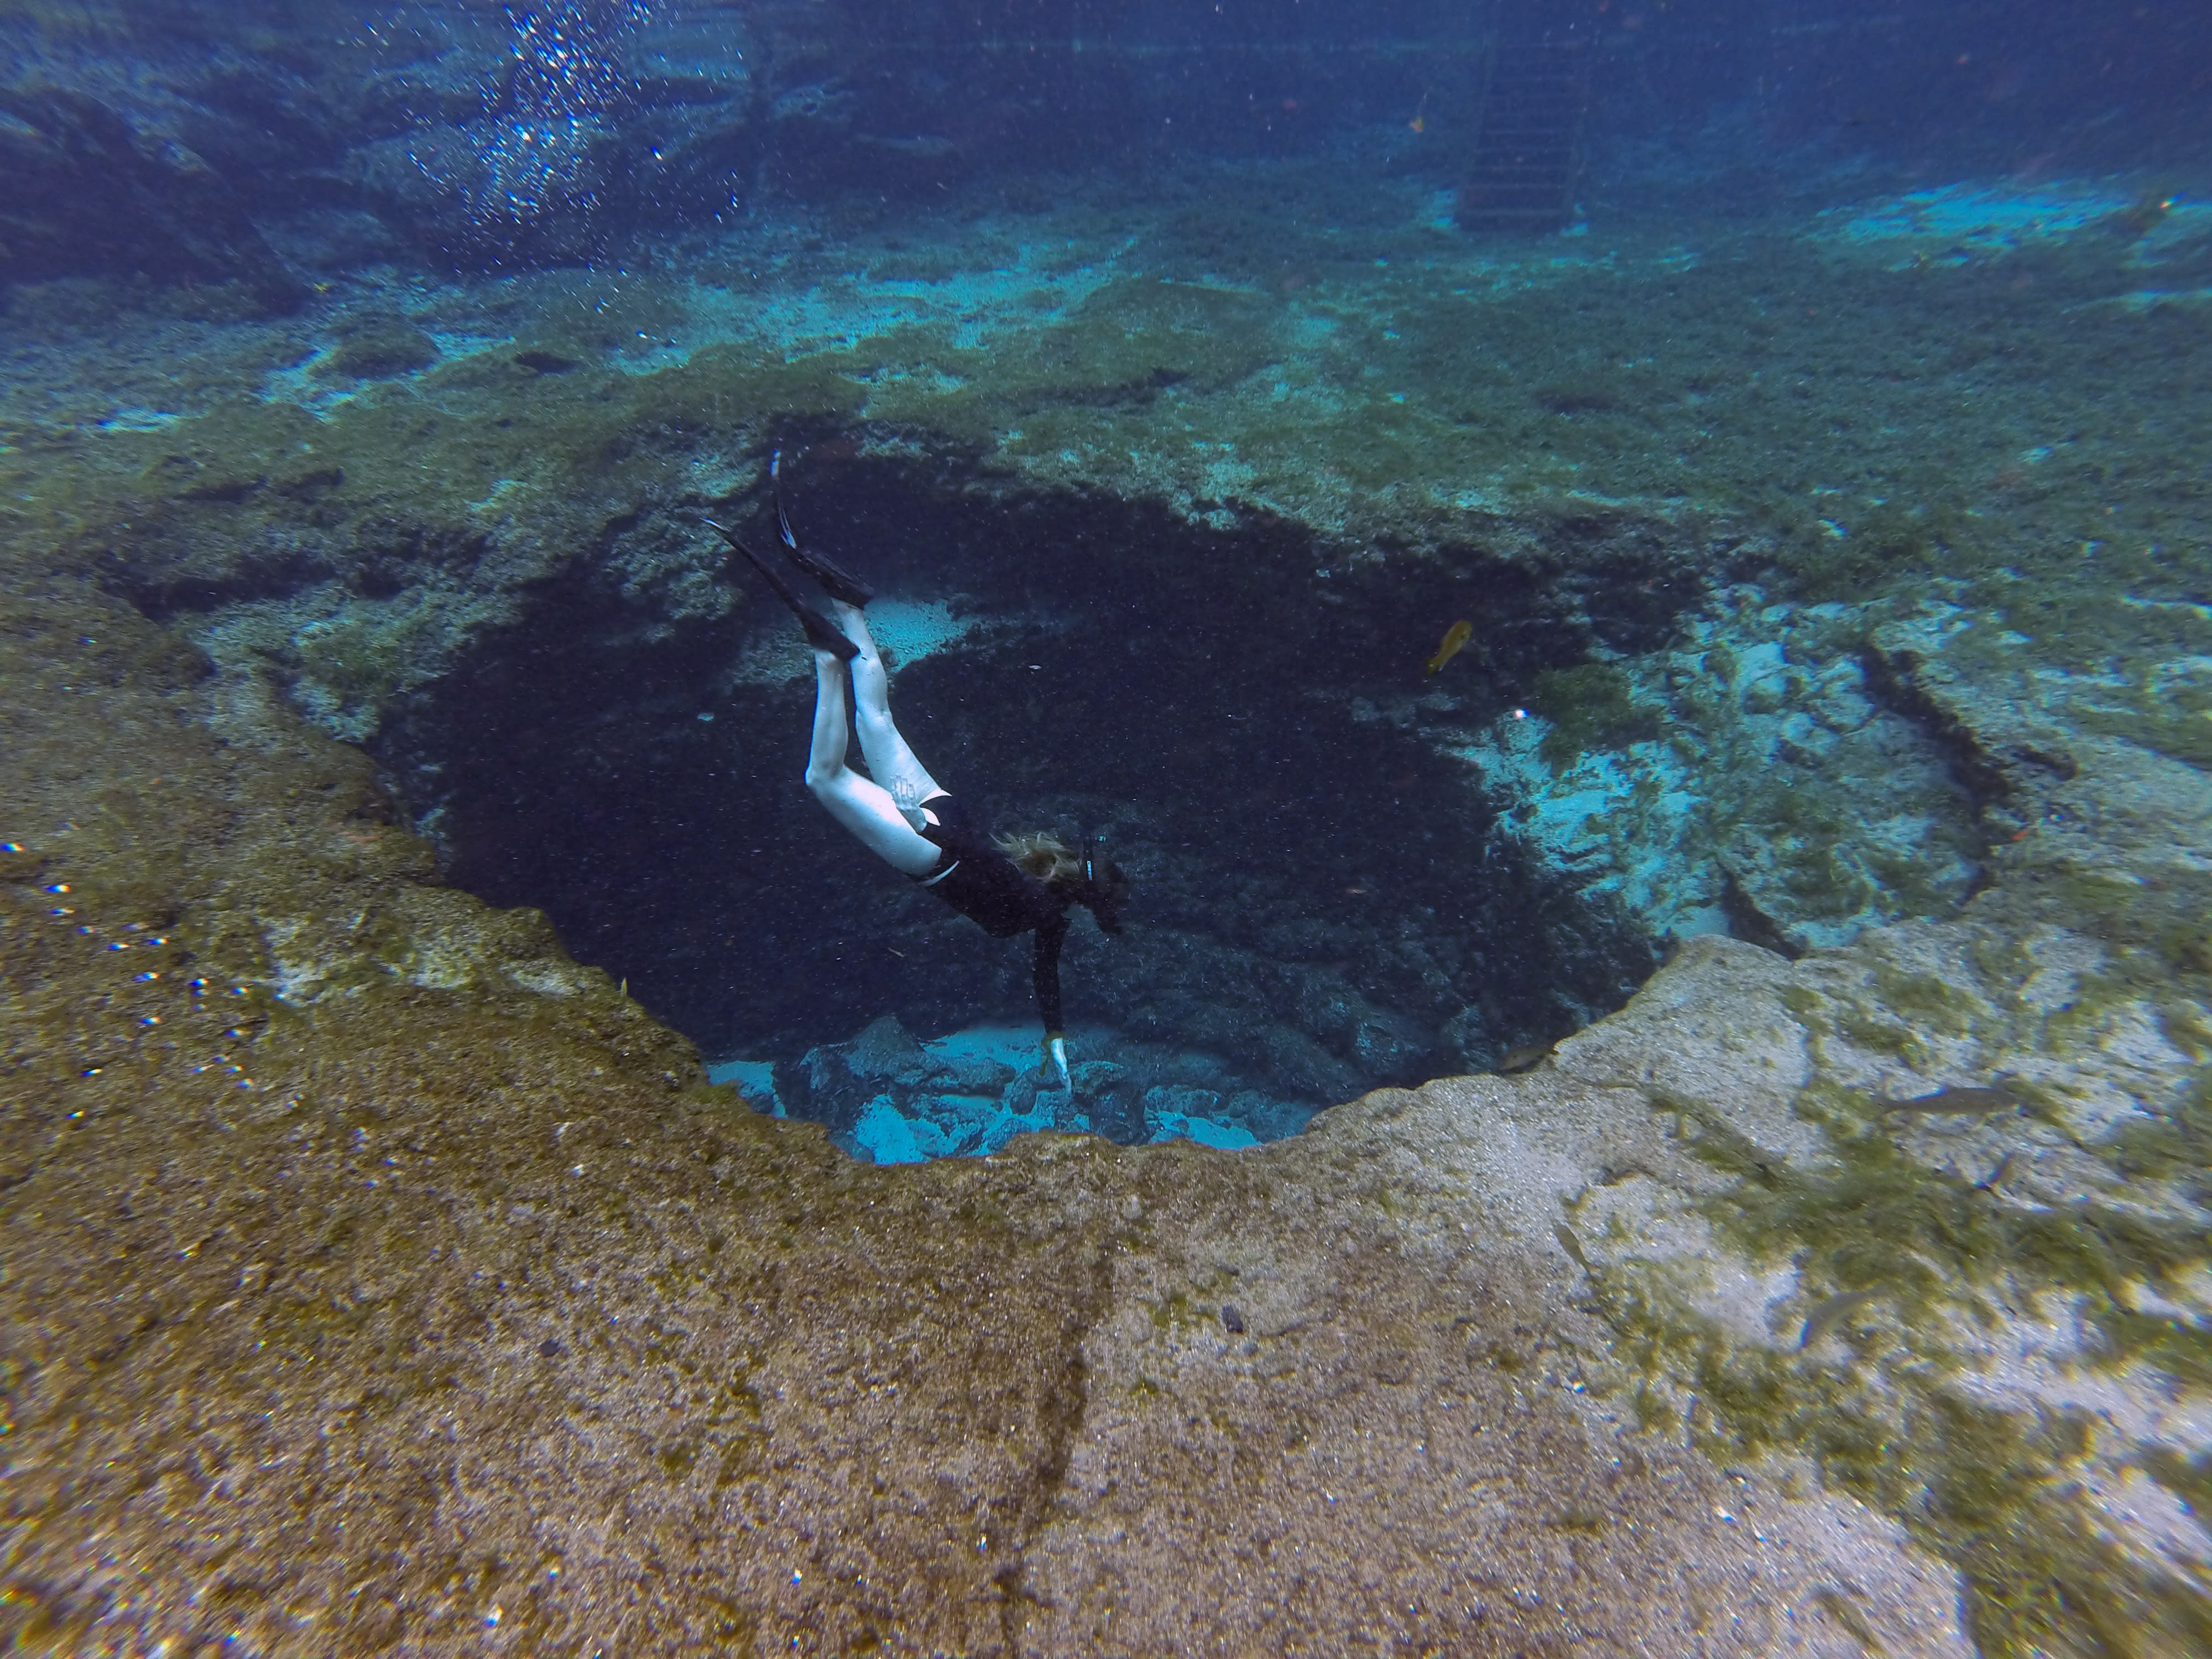 Slip under the surface of one of its seven cool and gin-clear springs, and it's easy to see what makes Ginnie Springs one of the best places to snorkel in Florida.